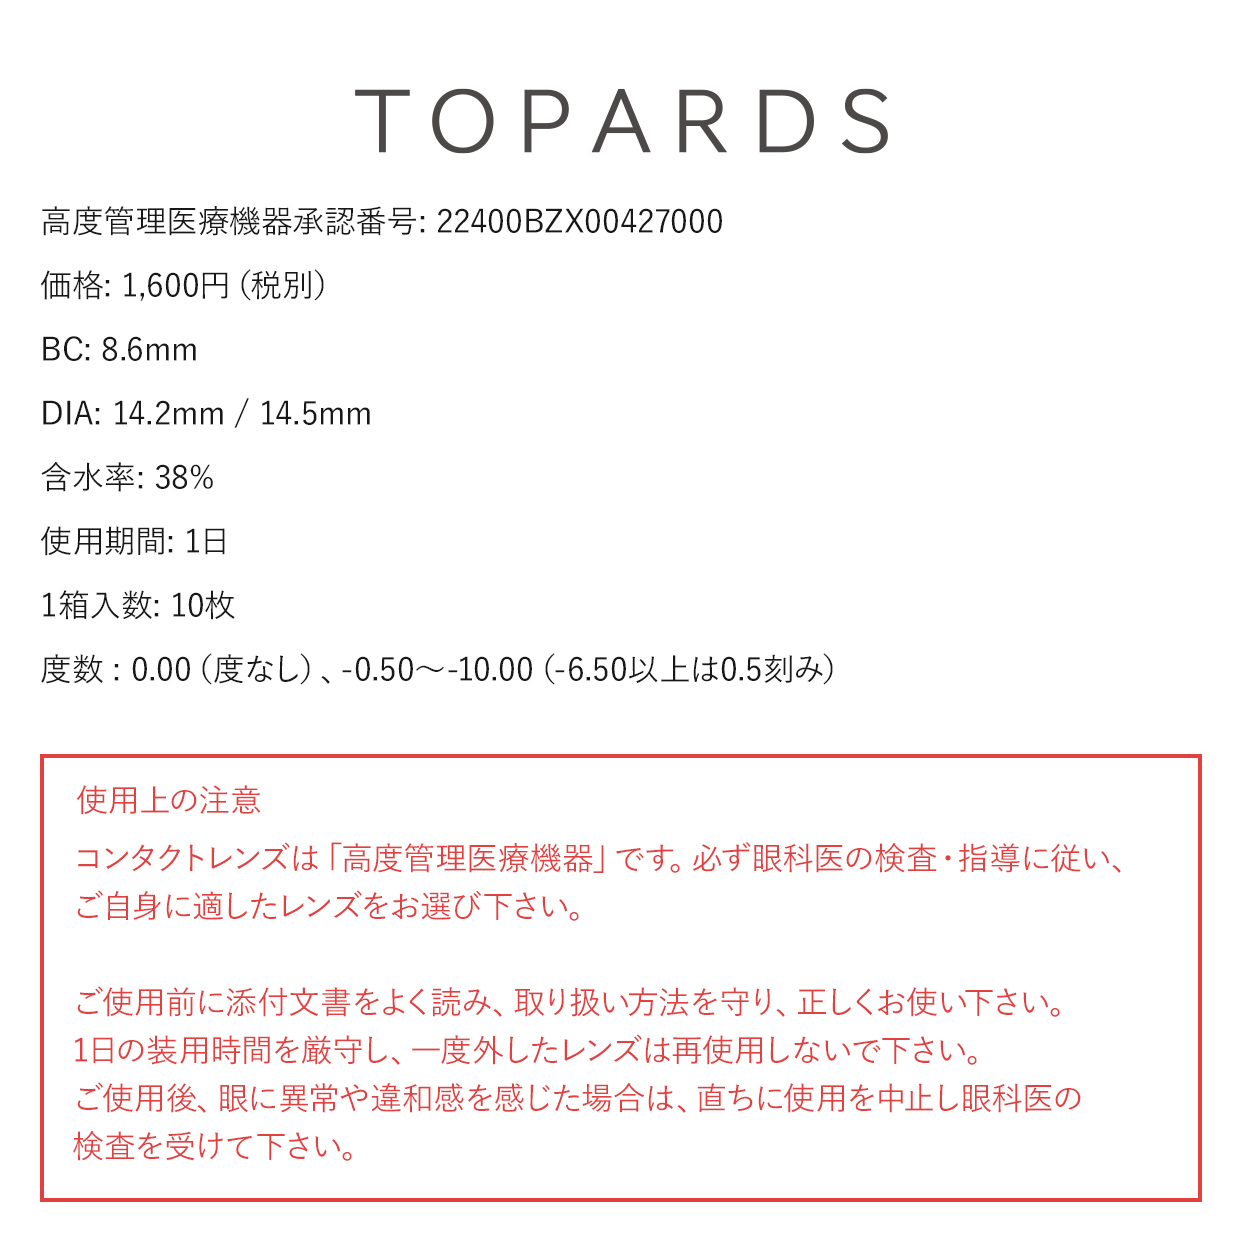 TOPARDS トパーズ 21